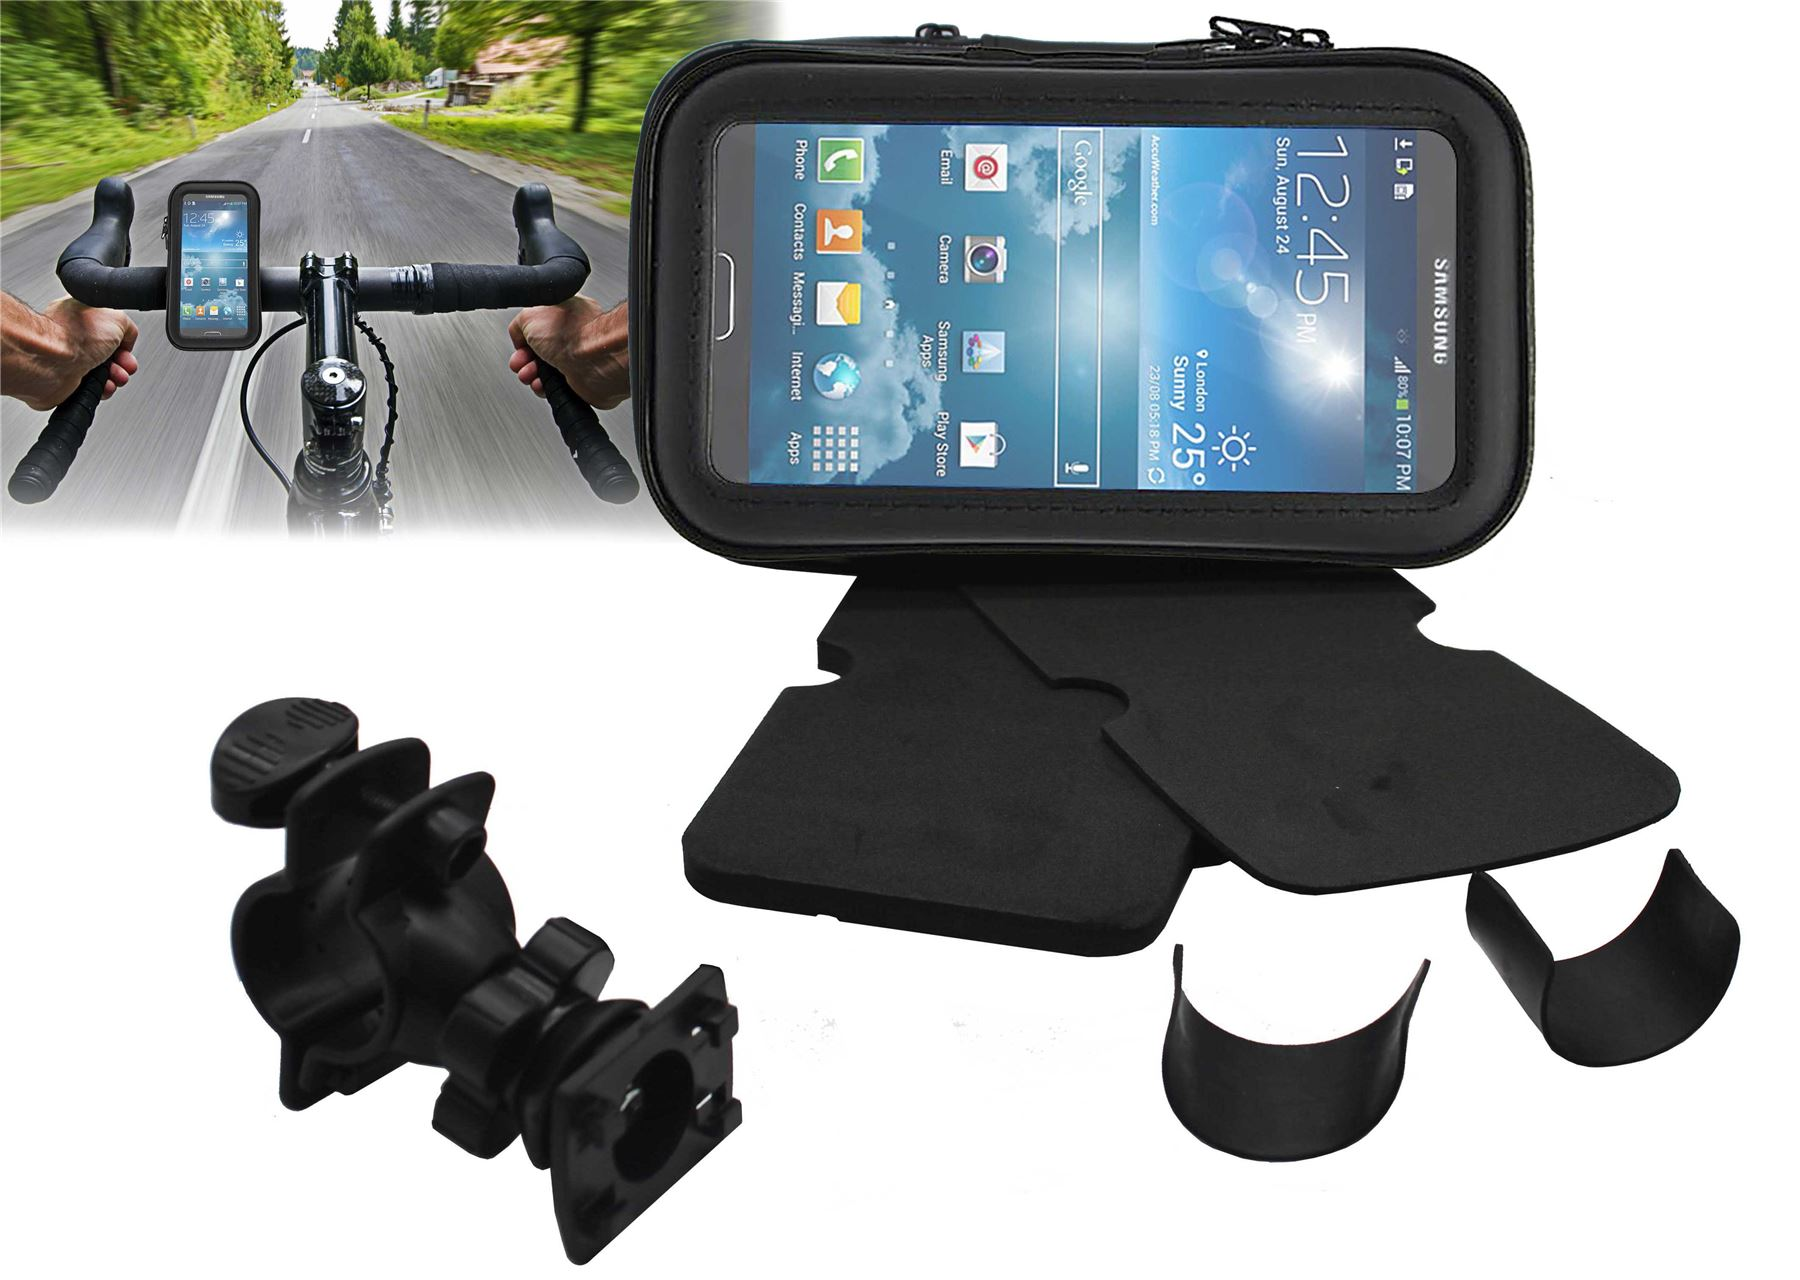 360-Degree-Universal-Bicycle-Bike-Waterproof-Case-Mount-Holder-For-HTC-Mobiles